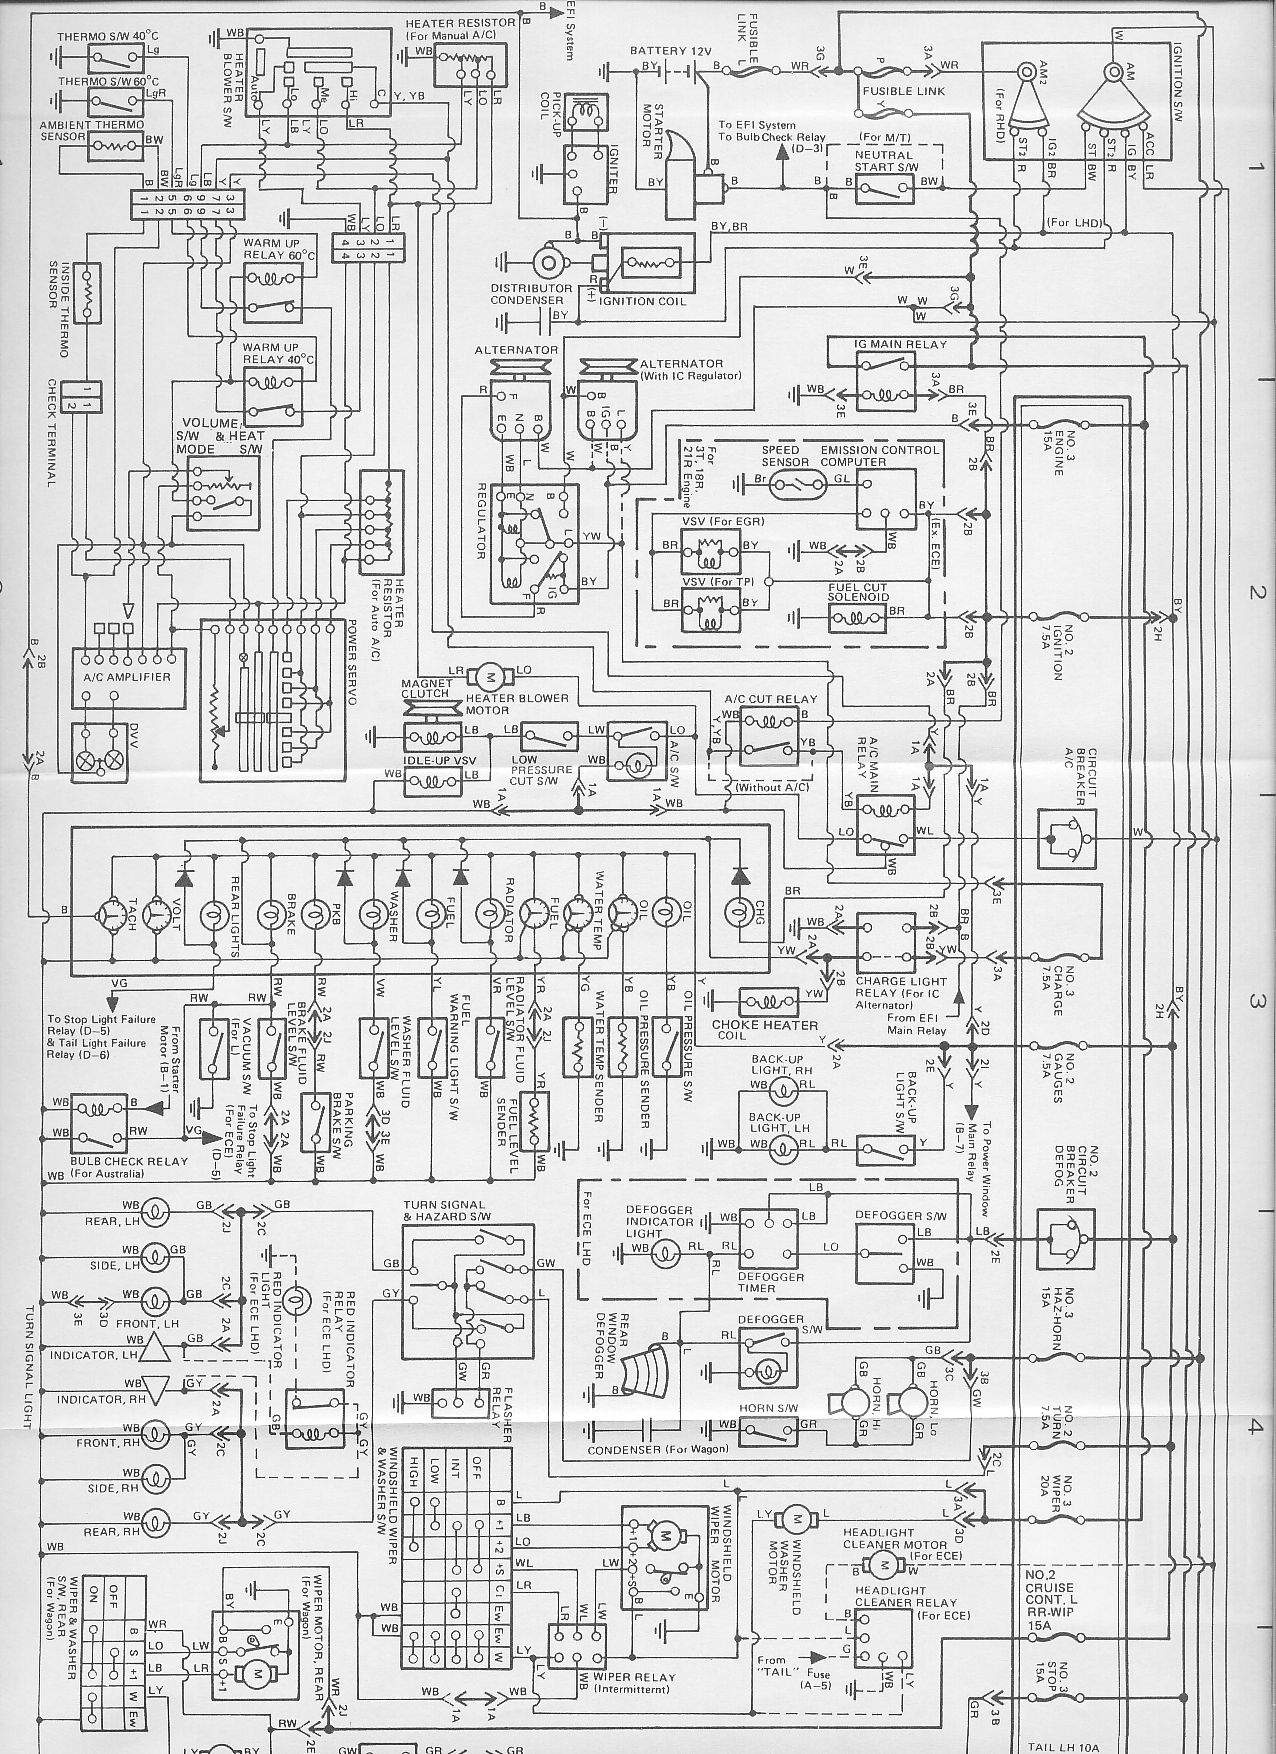 MX62Circuit3a diagrams 705665 international 4700 wiring diagram heater tom 1992 international 4700 wiring diagram at gsmx.co